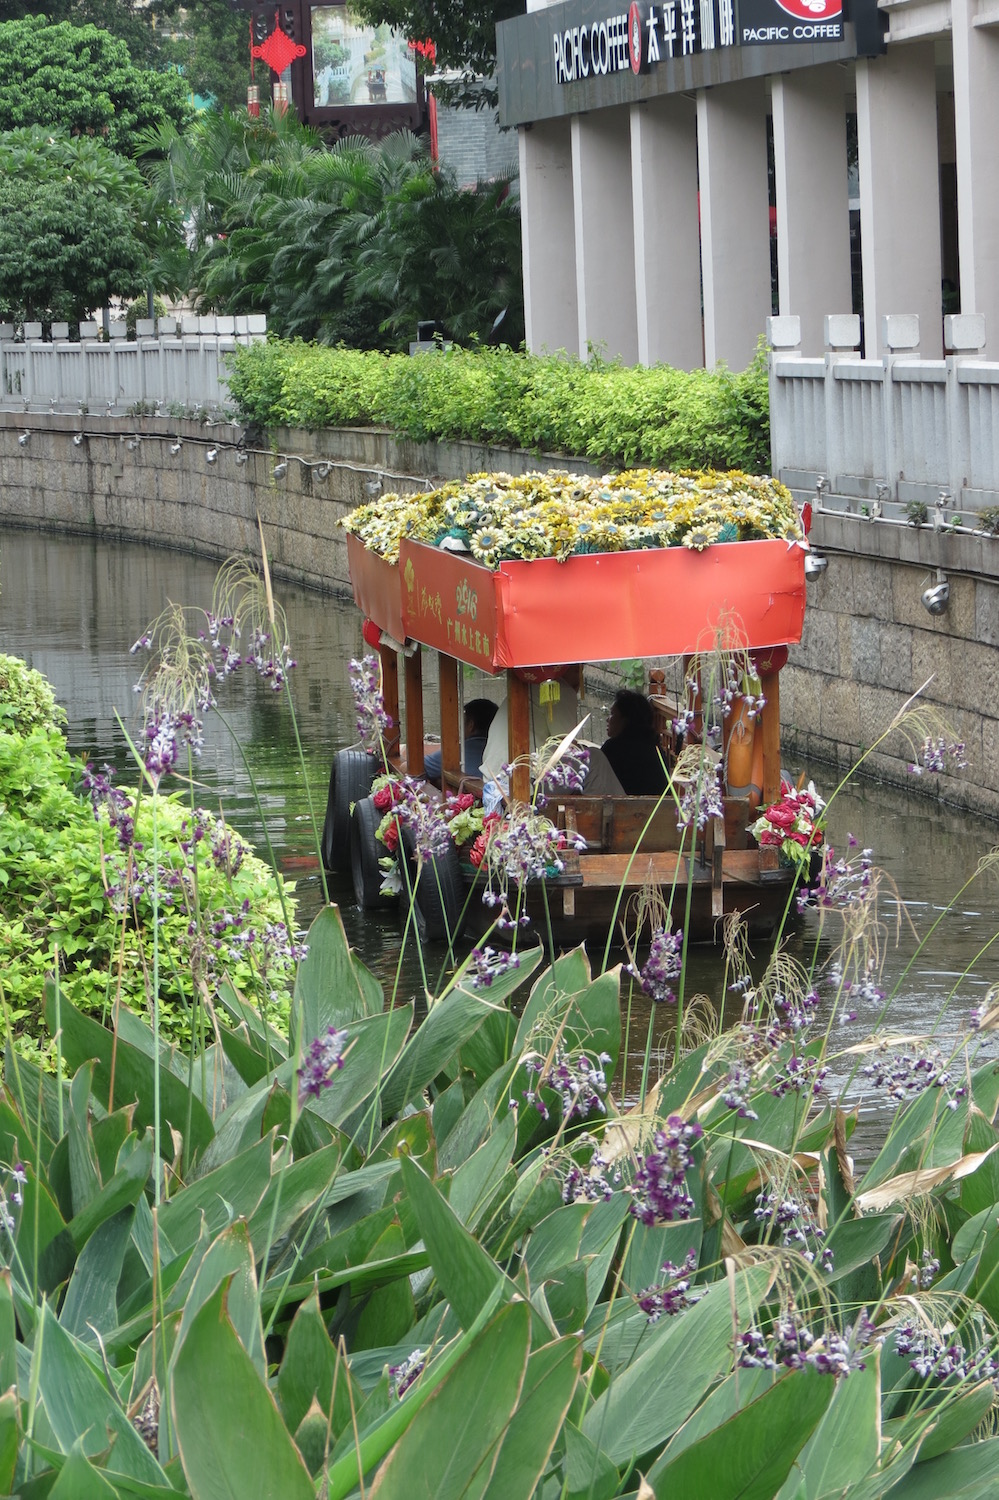 Flower-covered wooden boat in Guangzhou's Liwan Lake Park